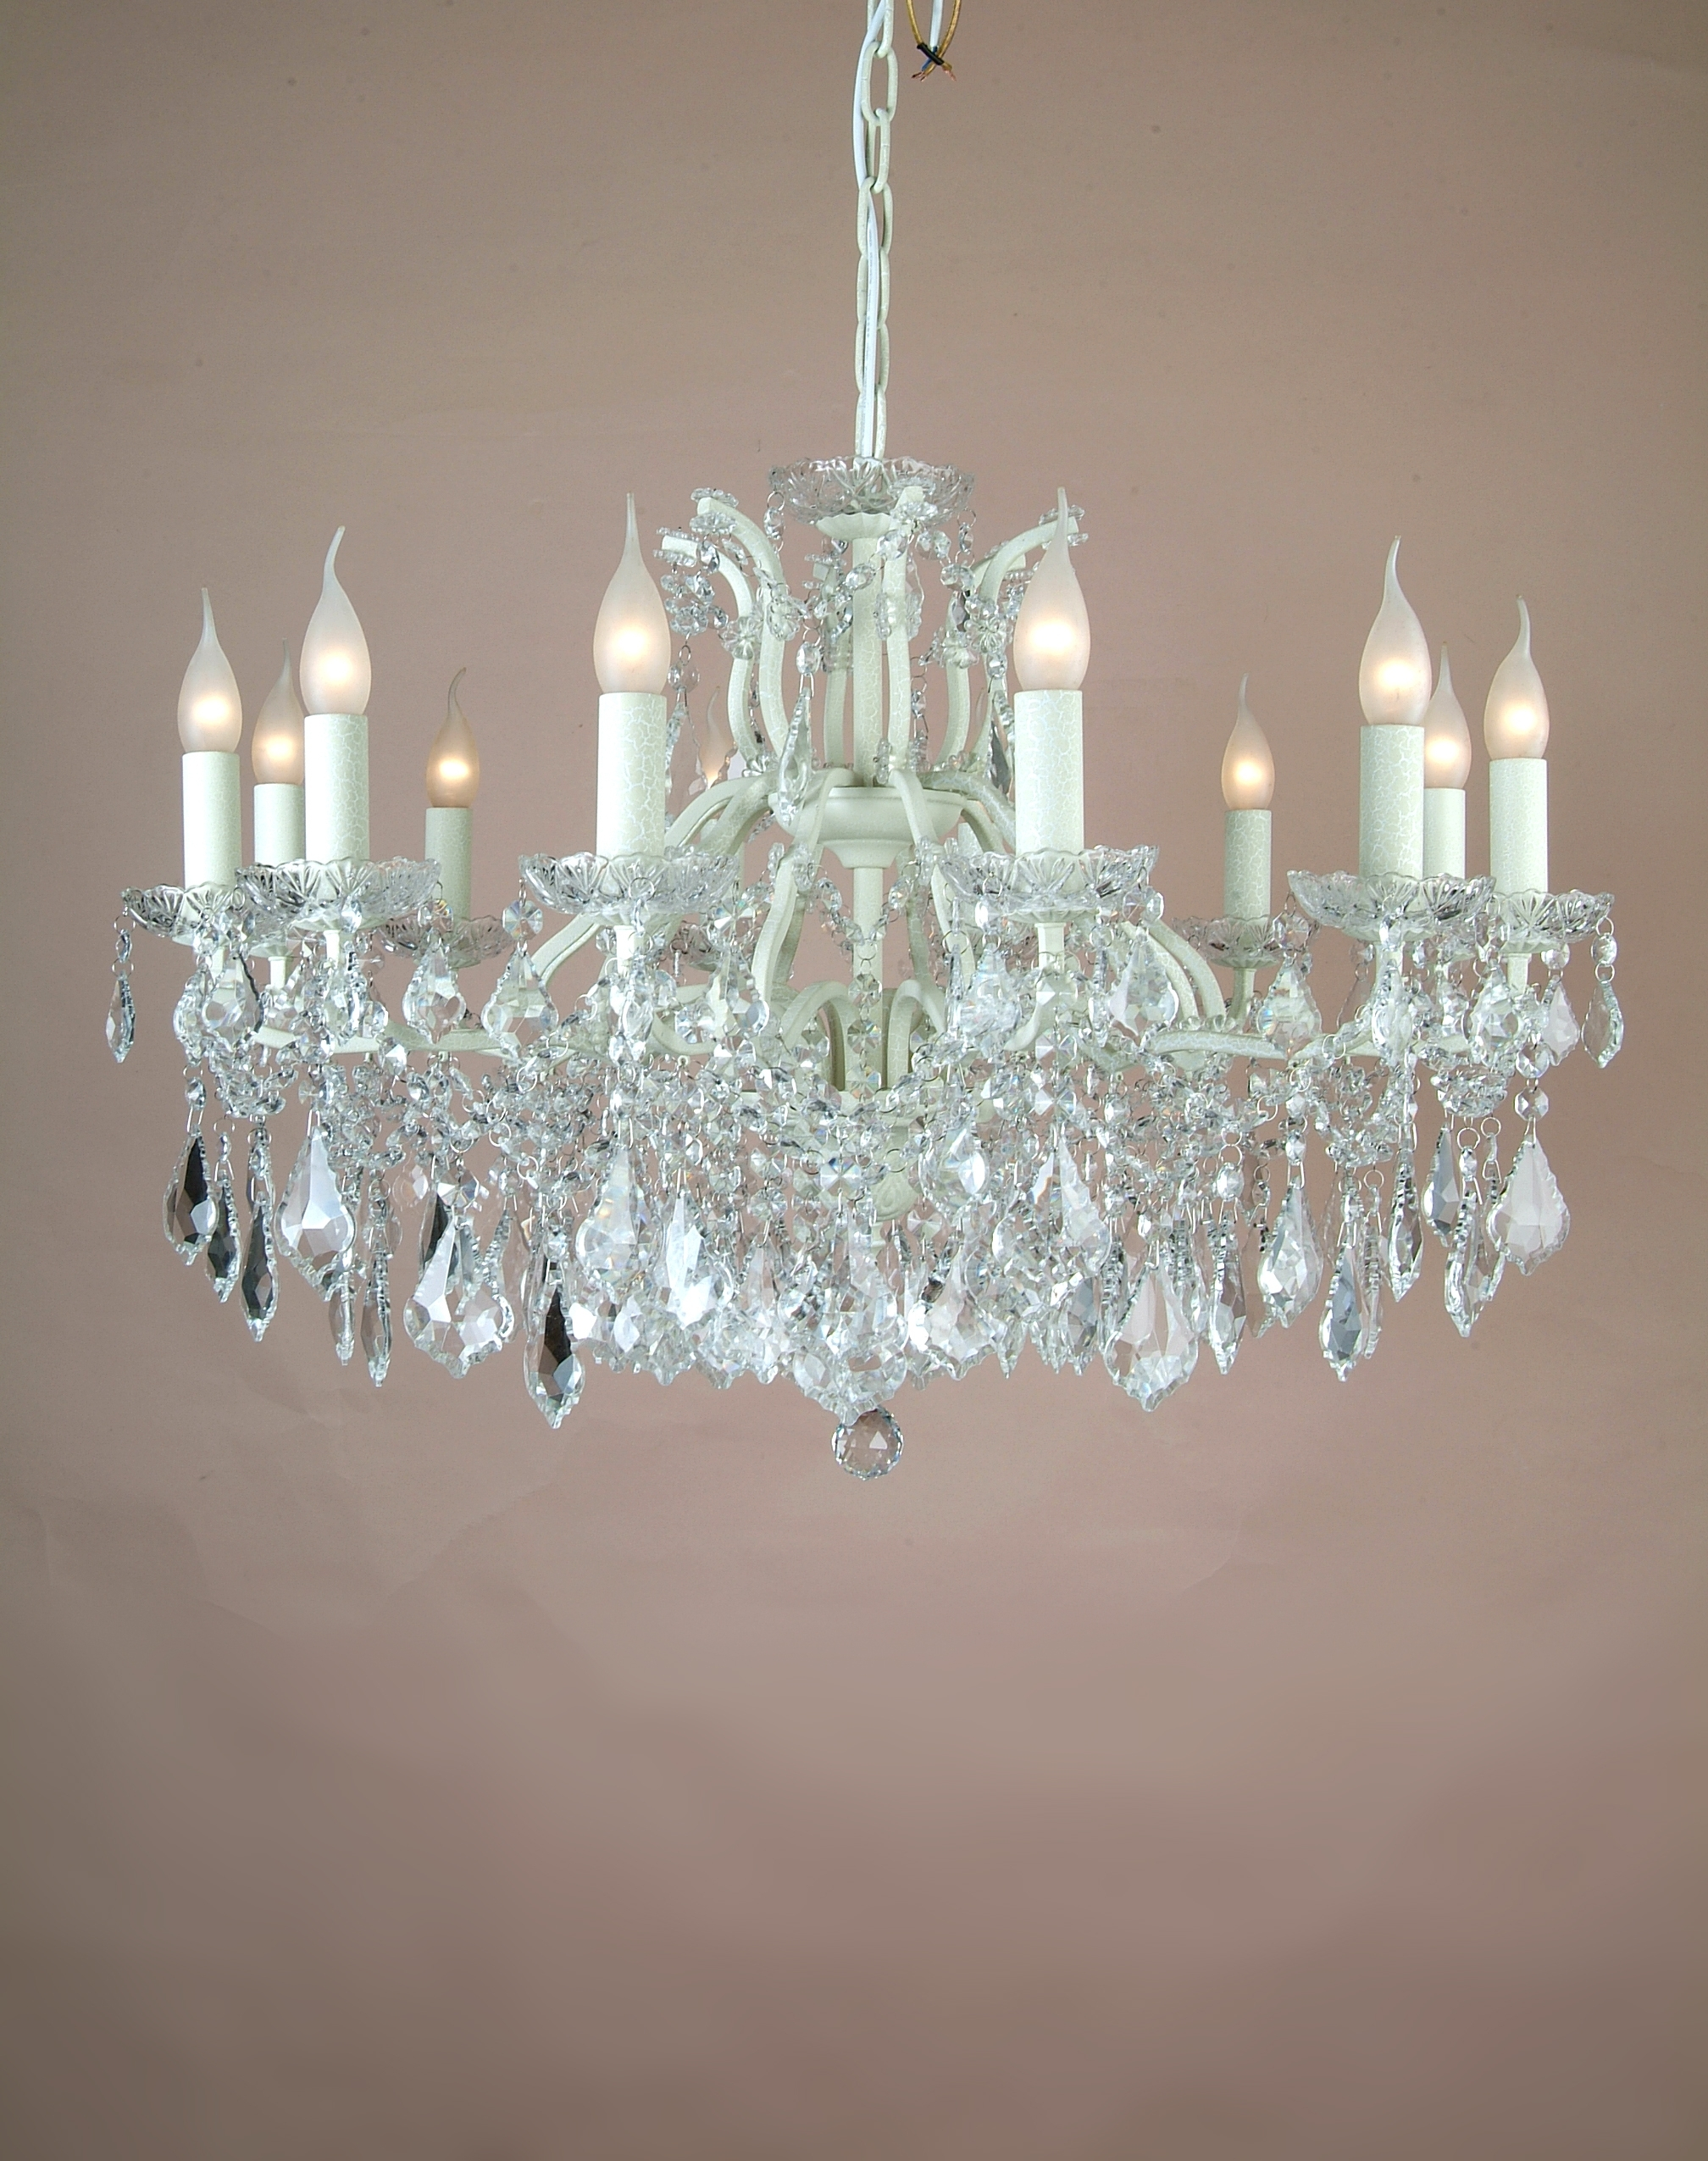 Glass Chandeliers – Otbsiu Within Best And Newest Glass Chandeliers (View 3 of 20)